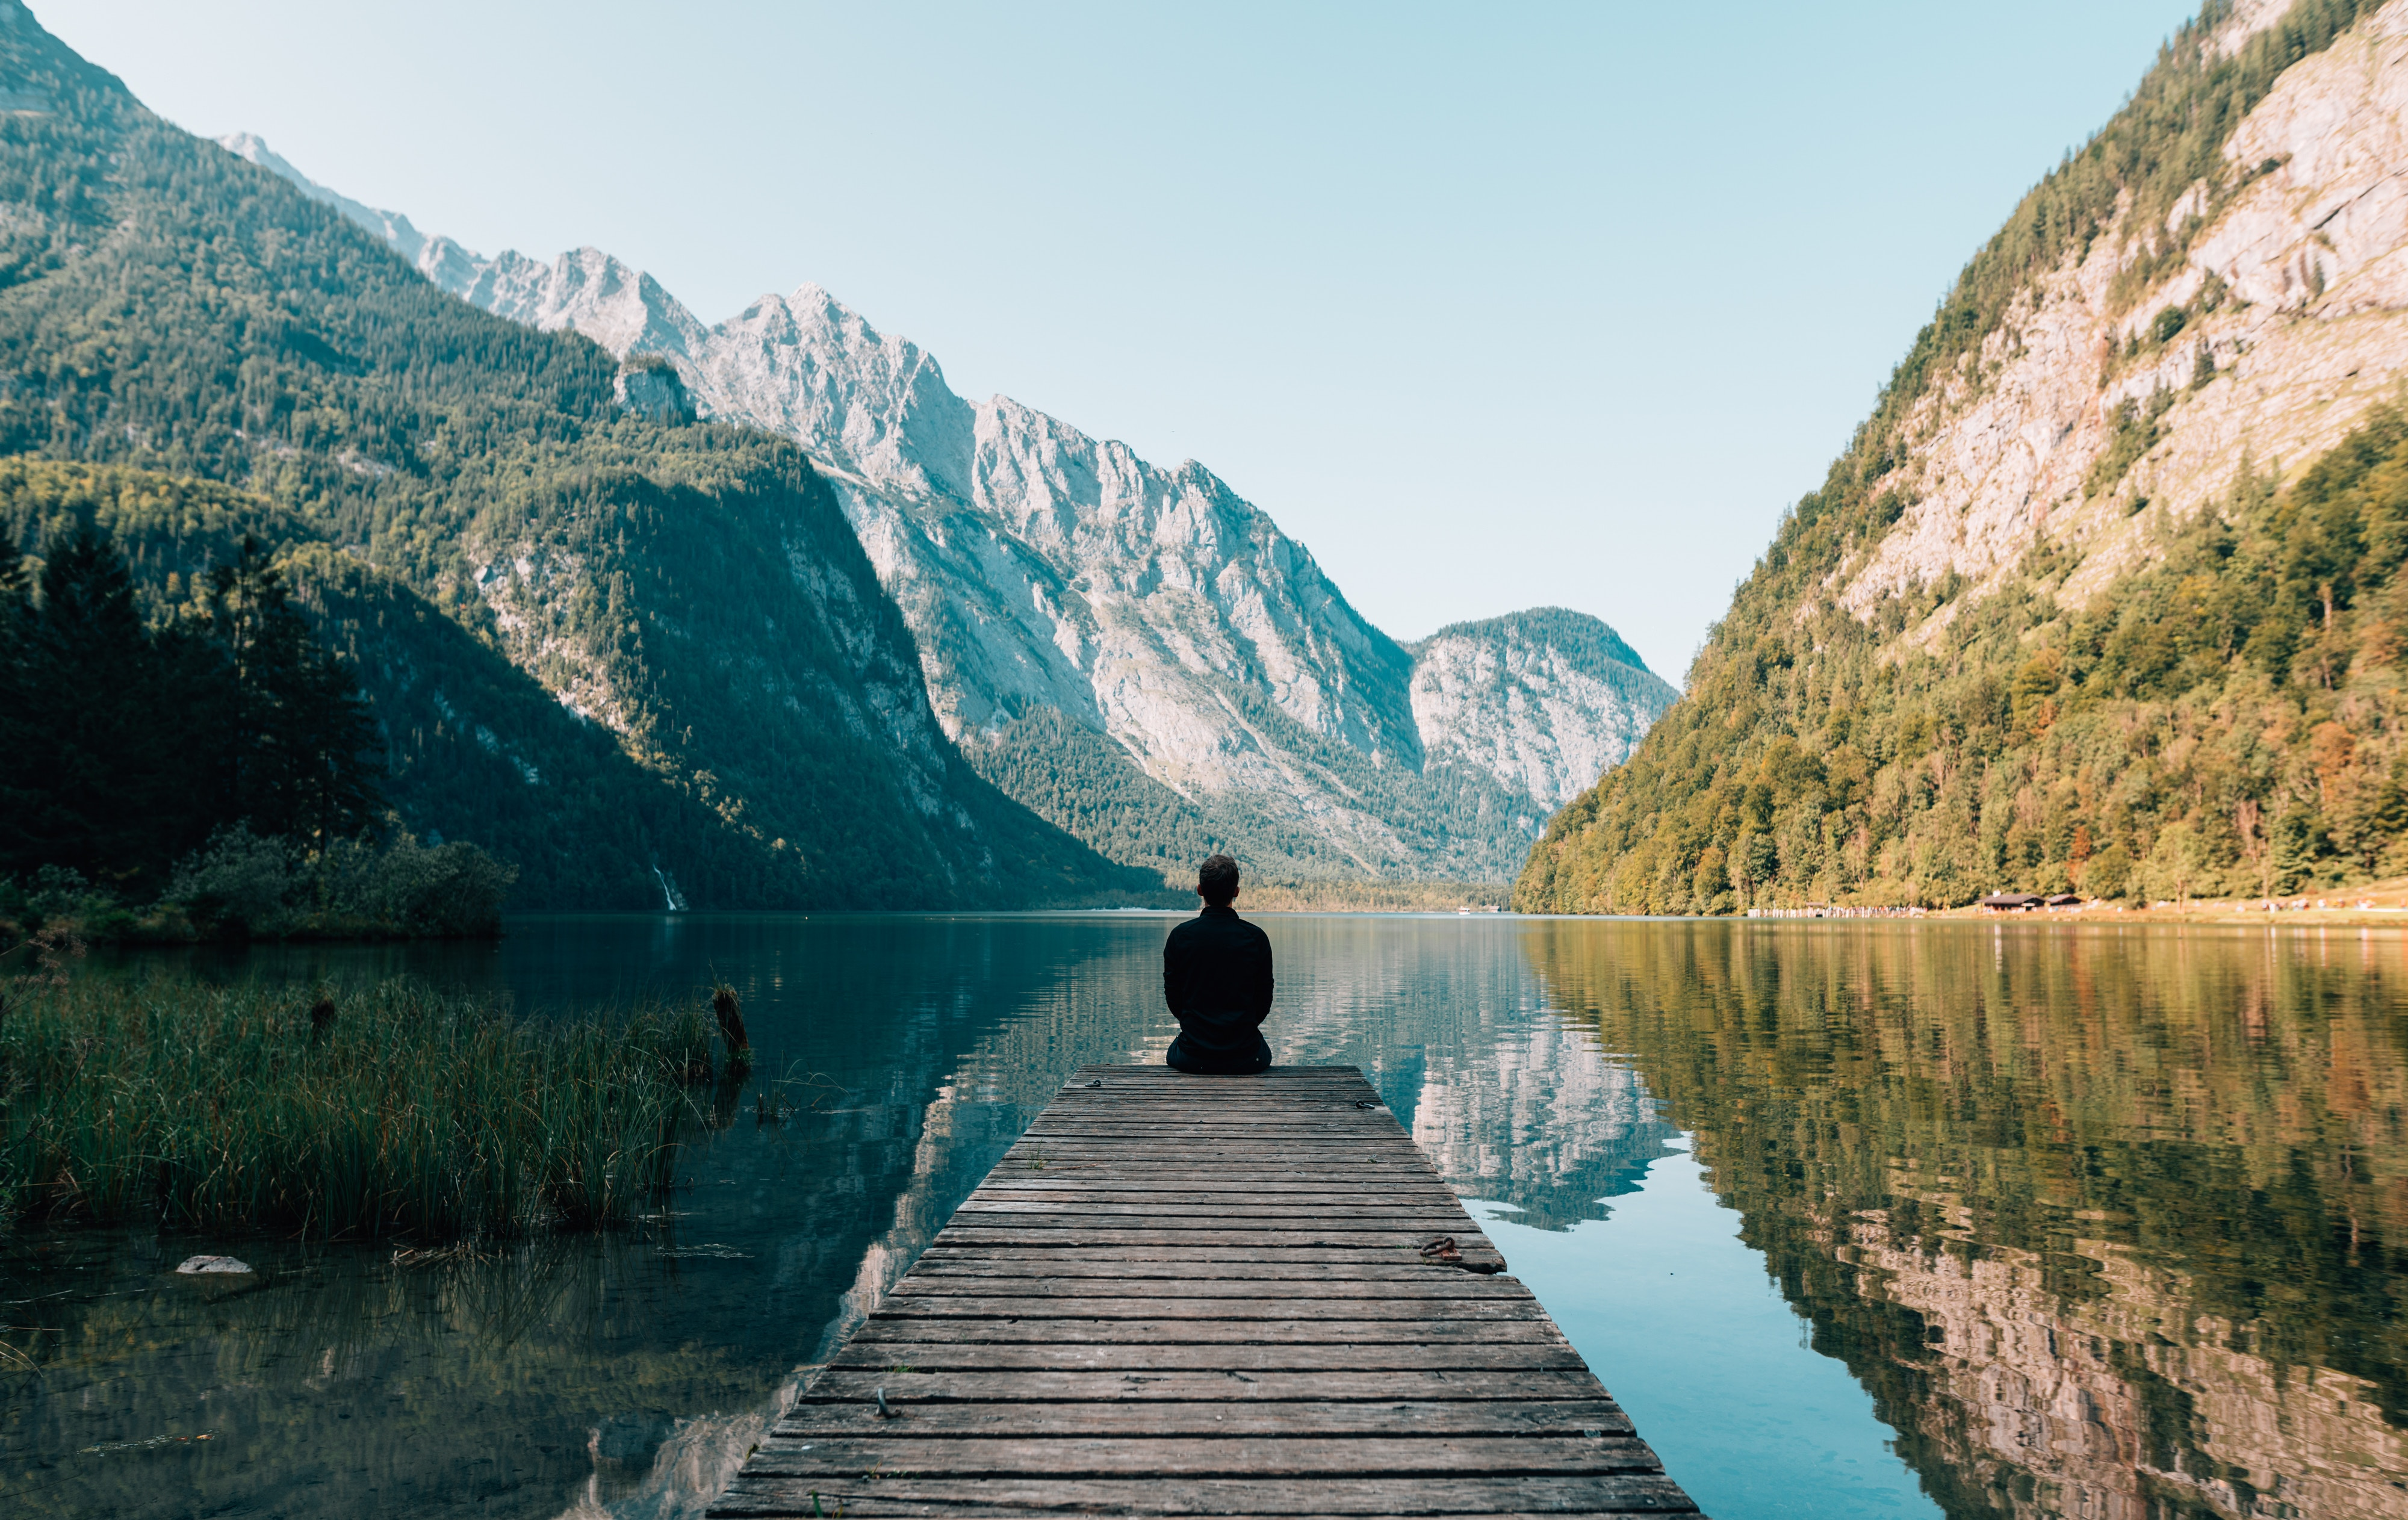 138565 download wallpaper Nature, Human, Person, Berth, Wharf, Loneliness, Silence, Mountains screensavers and pictures for free